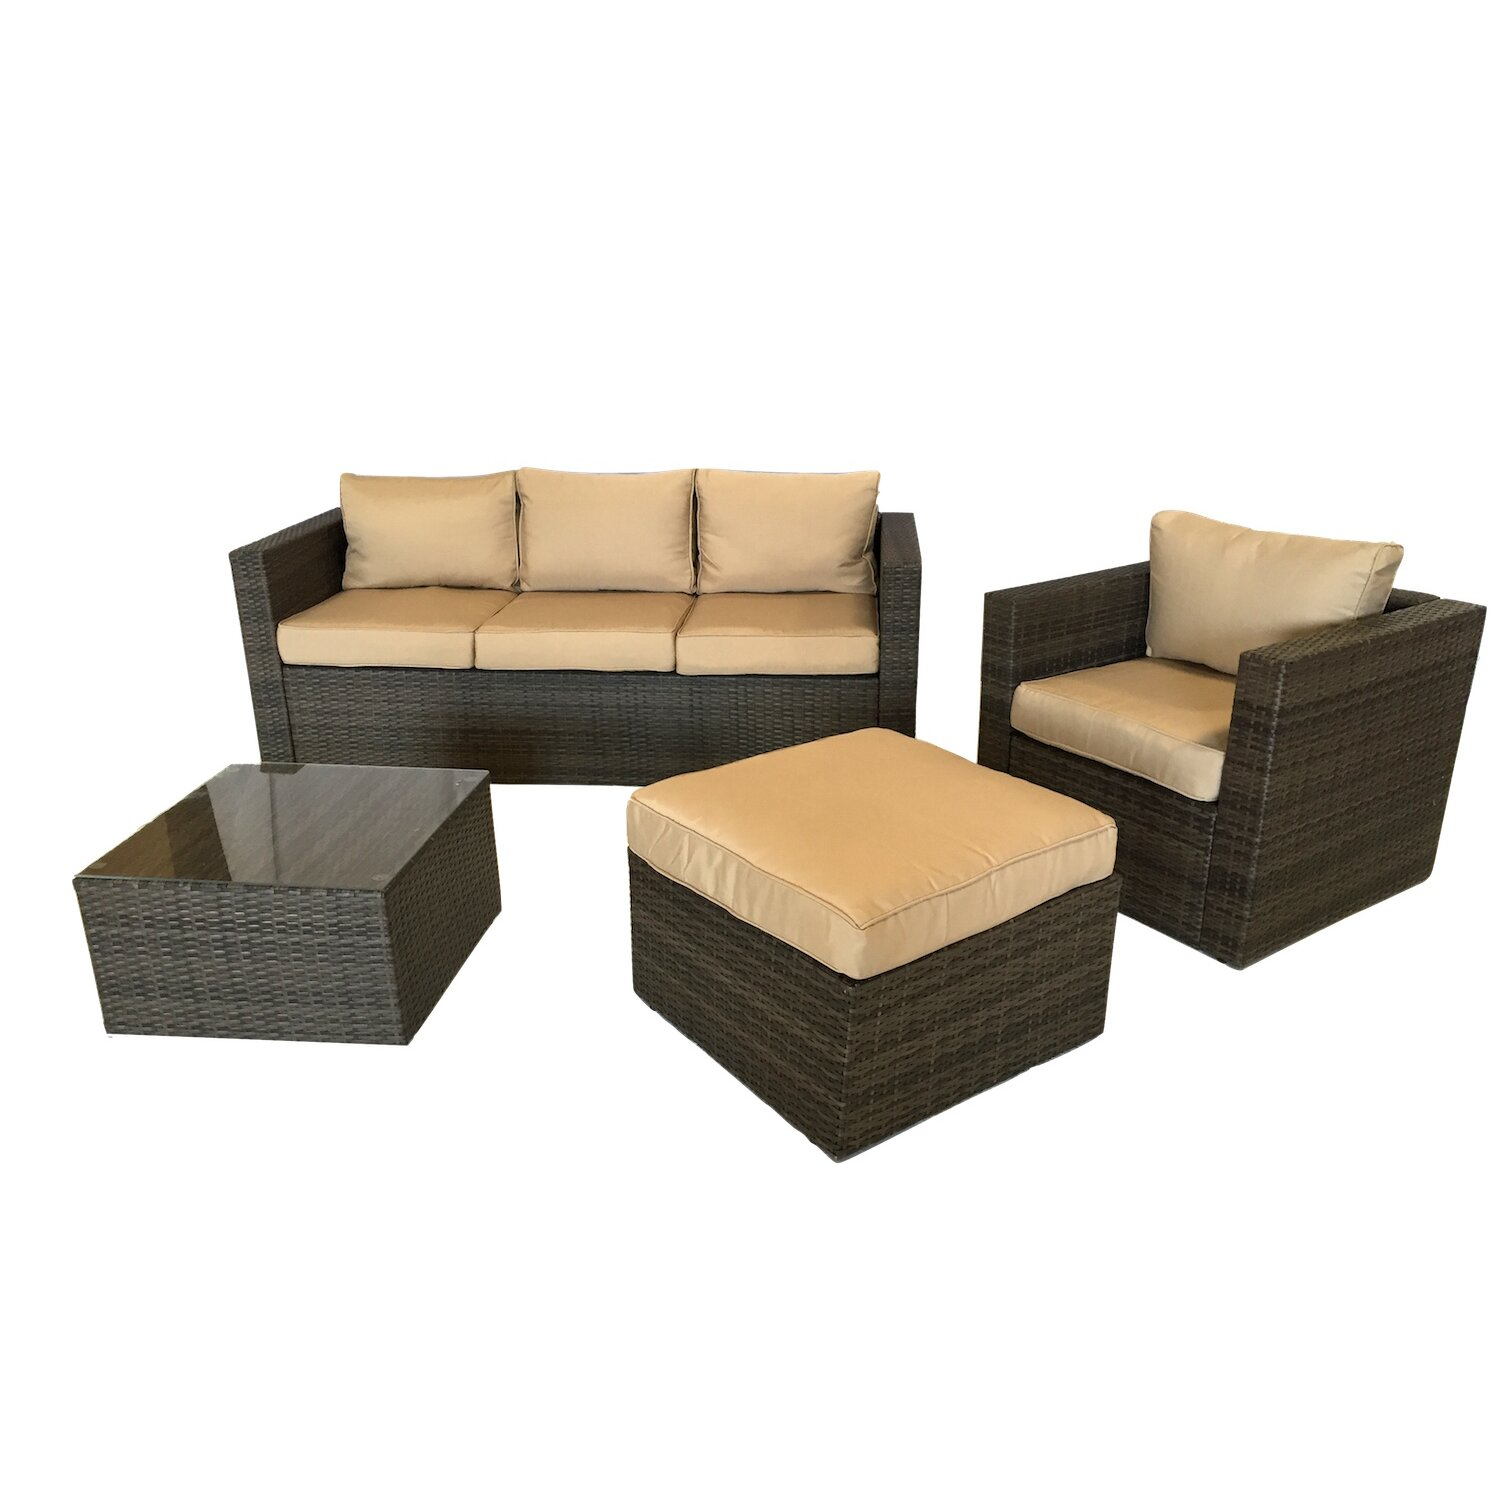 Patio Wicker 5 Piece Deep Seating Group With Cushion Reviews Joss Am